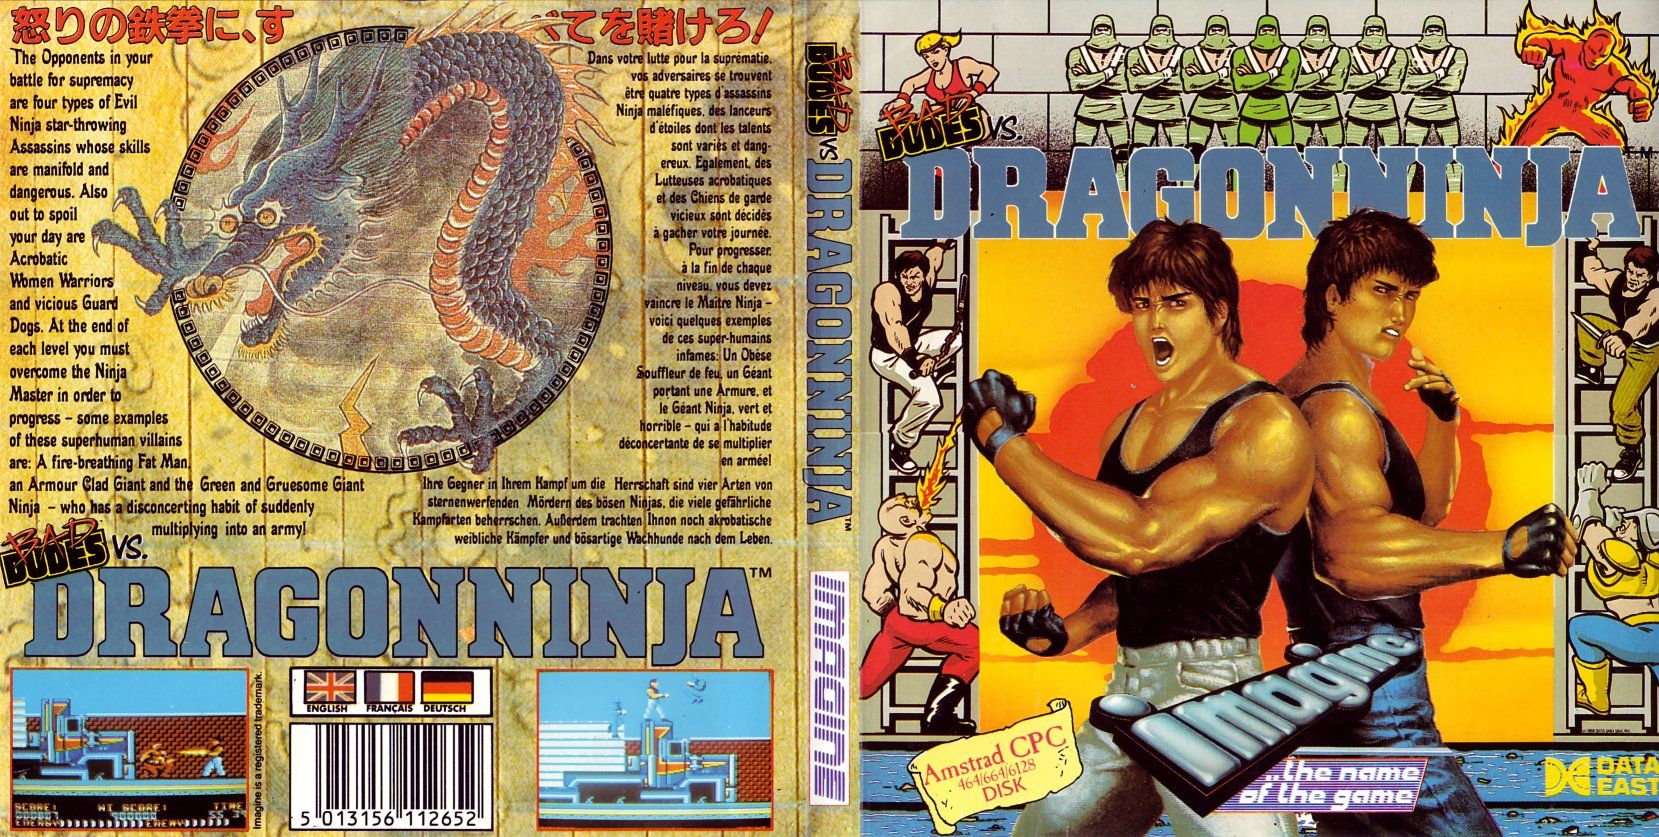 cover of the Amstrad CPC game dragon_ninja_(bad_dudes_vs) by Mig